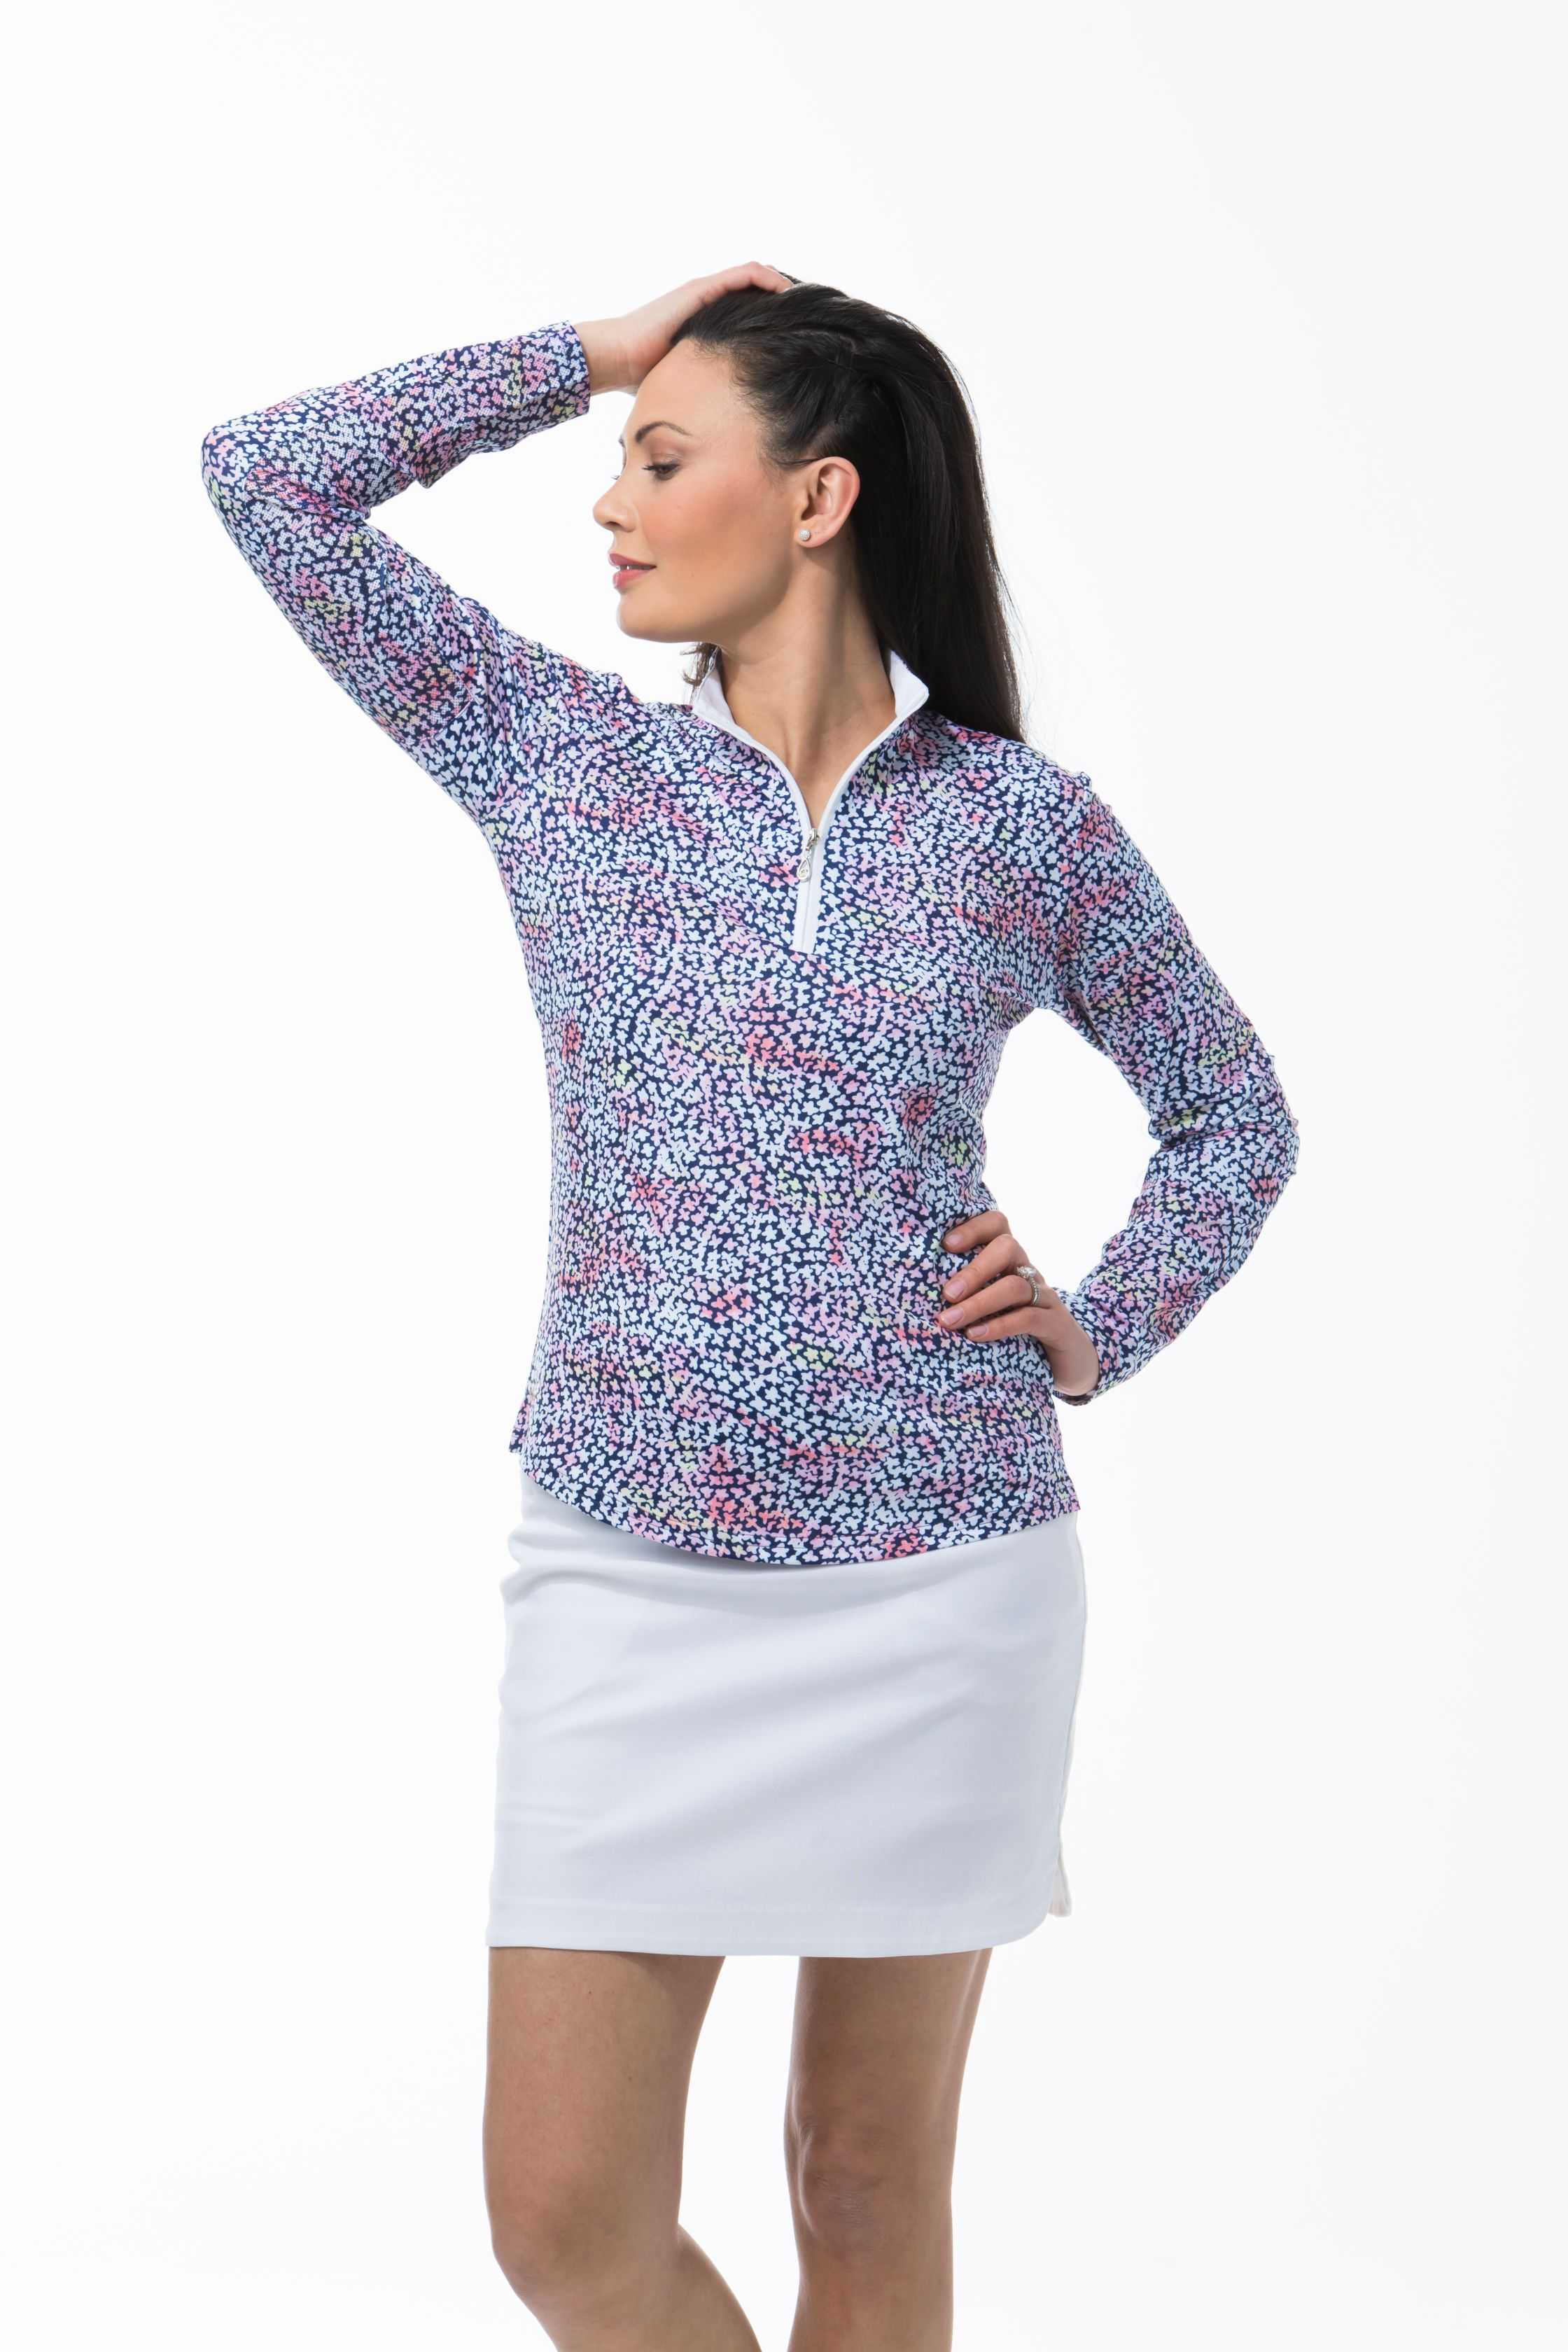 900463 - SolCool Zip Mock Forget Me Knot. Pink